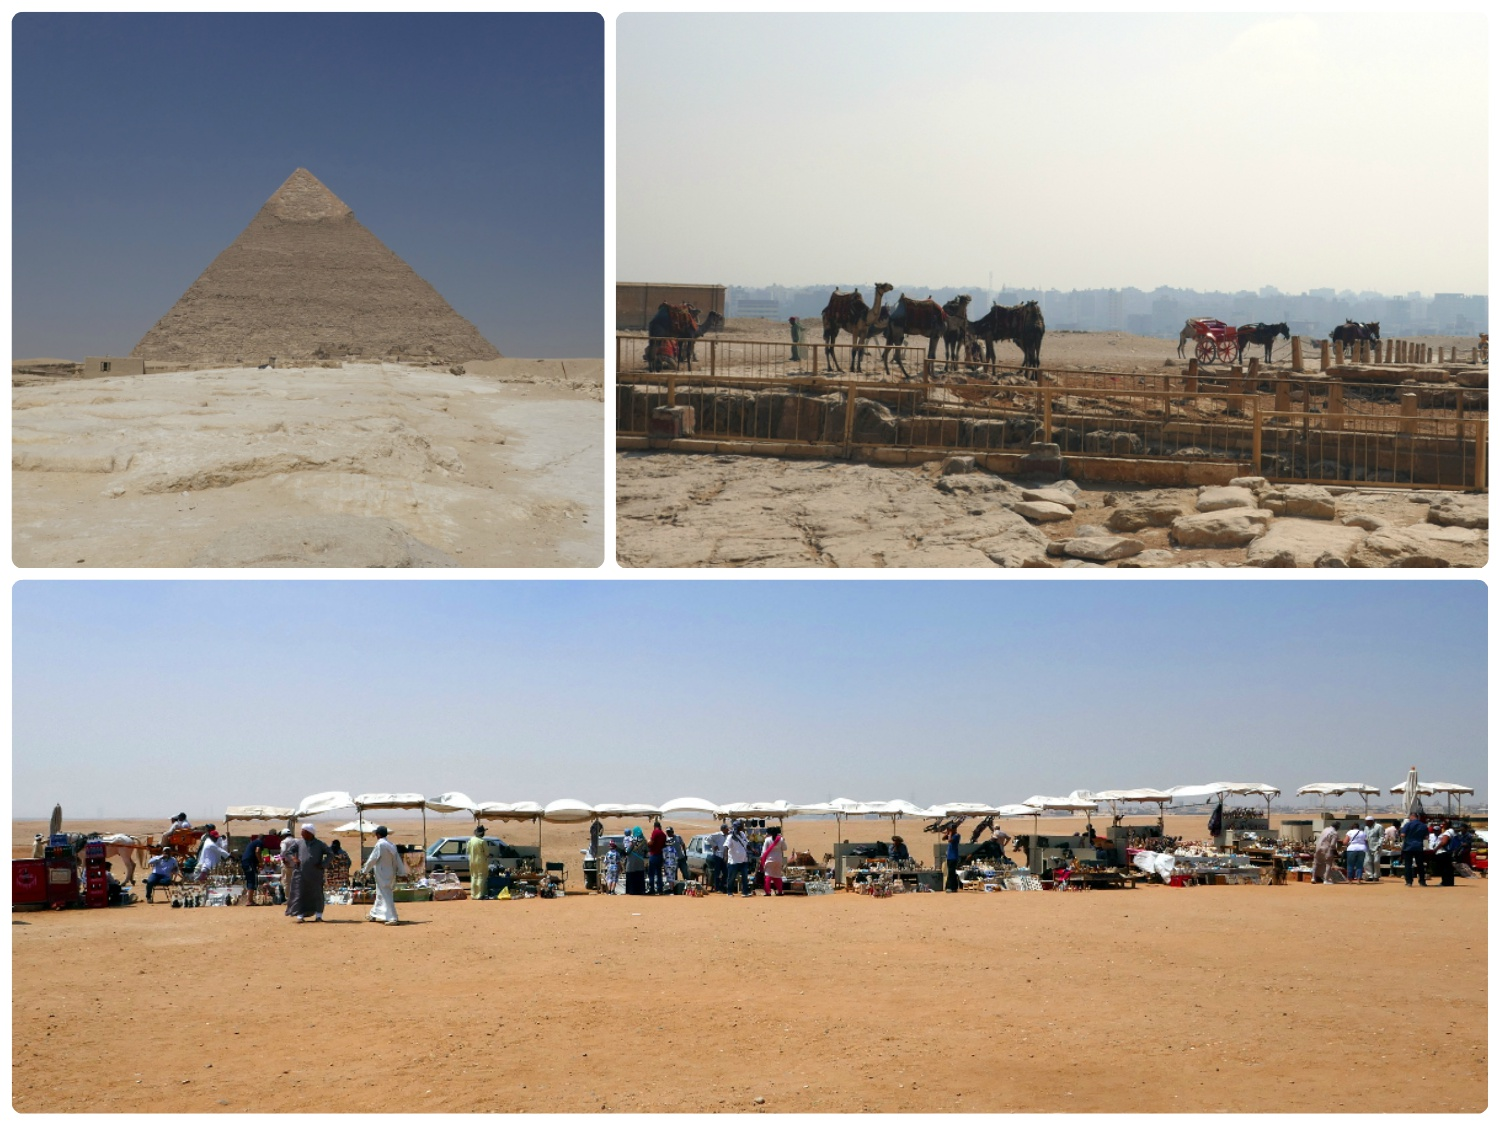 Clockwise (from the top):Pyramid of Khafre taken from the walkway behind the Great Sphinx of Giza, camels and horses with the city in the background, a row of vendors at the main outlook.